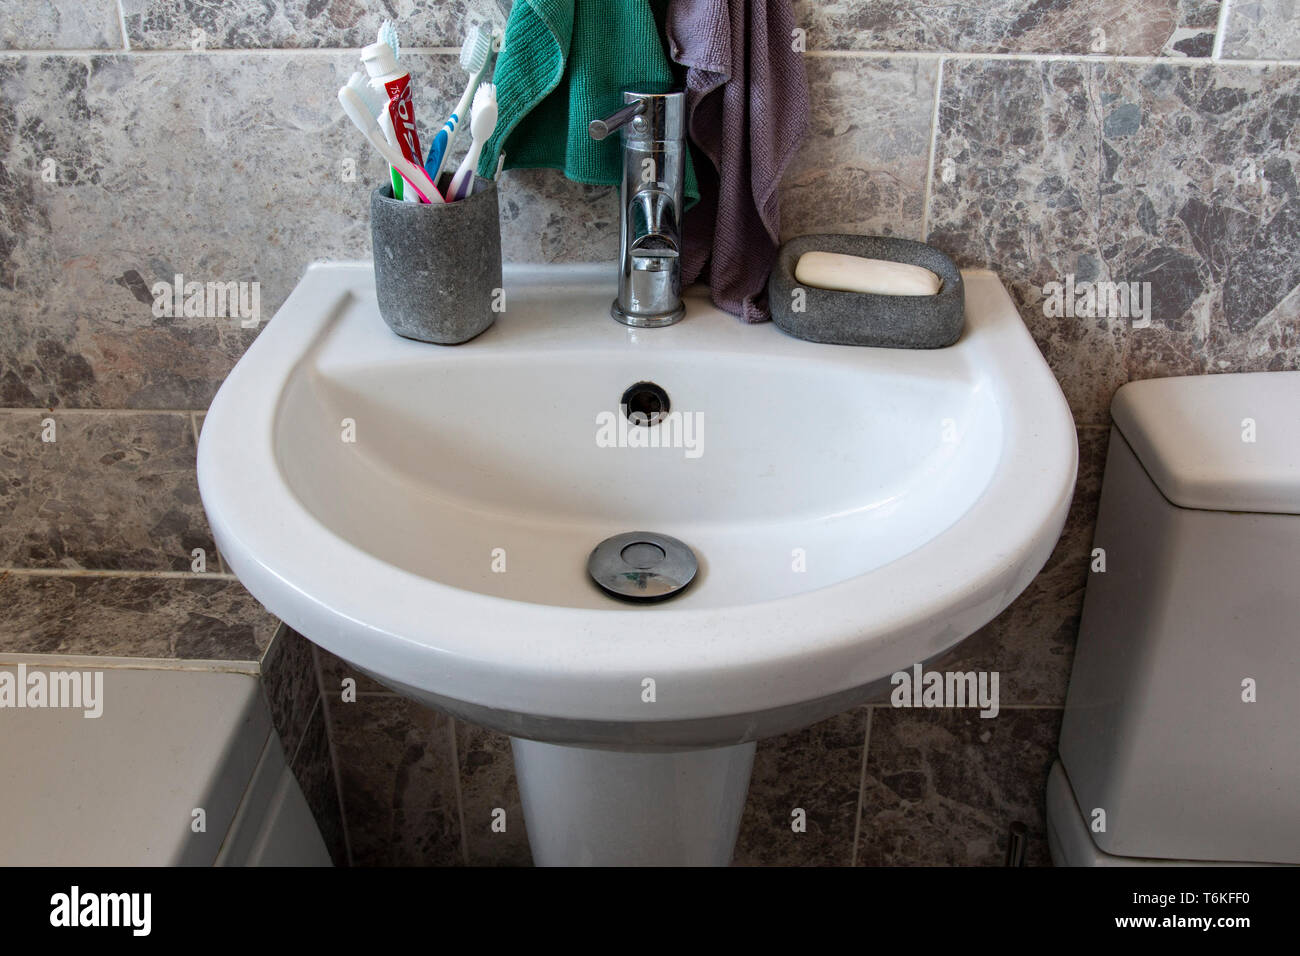 bathroom sink after it has been cleaned - Stock Image